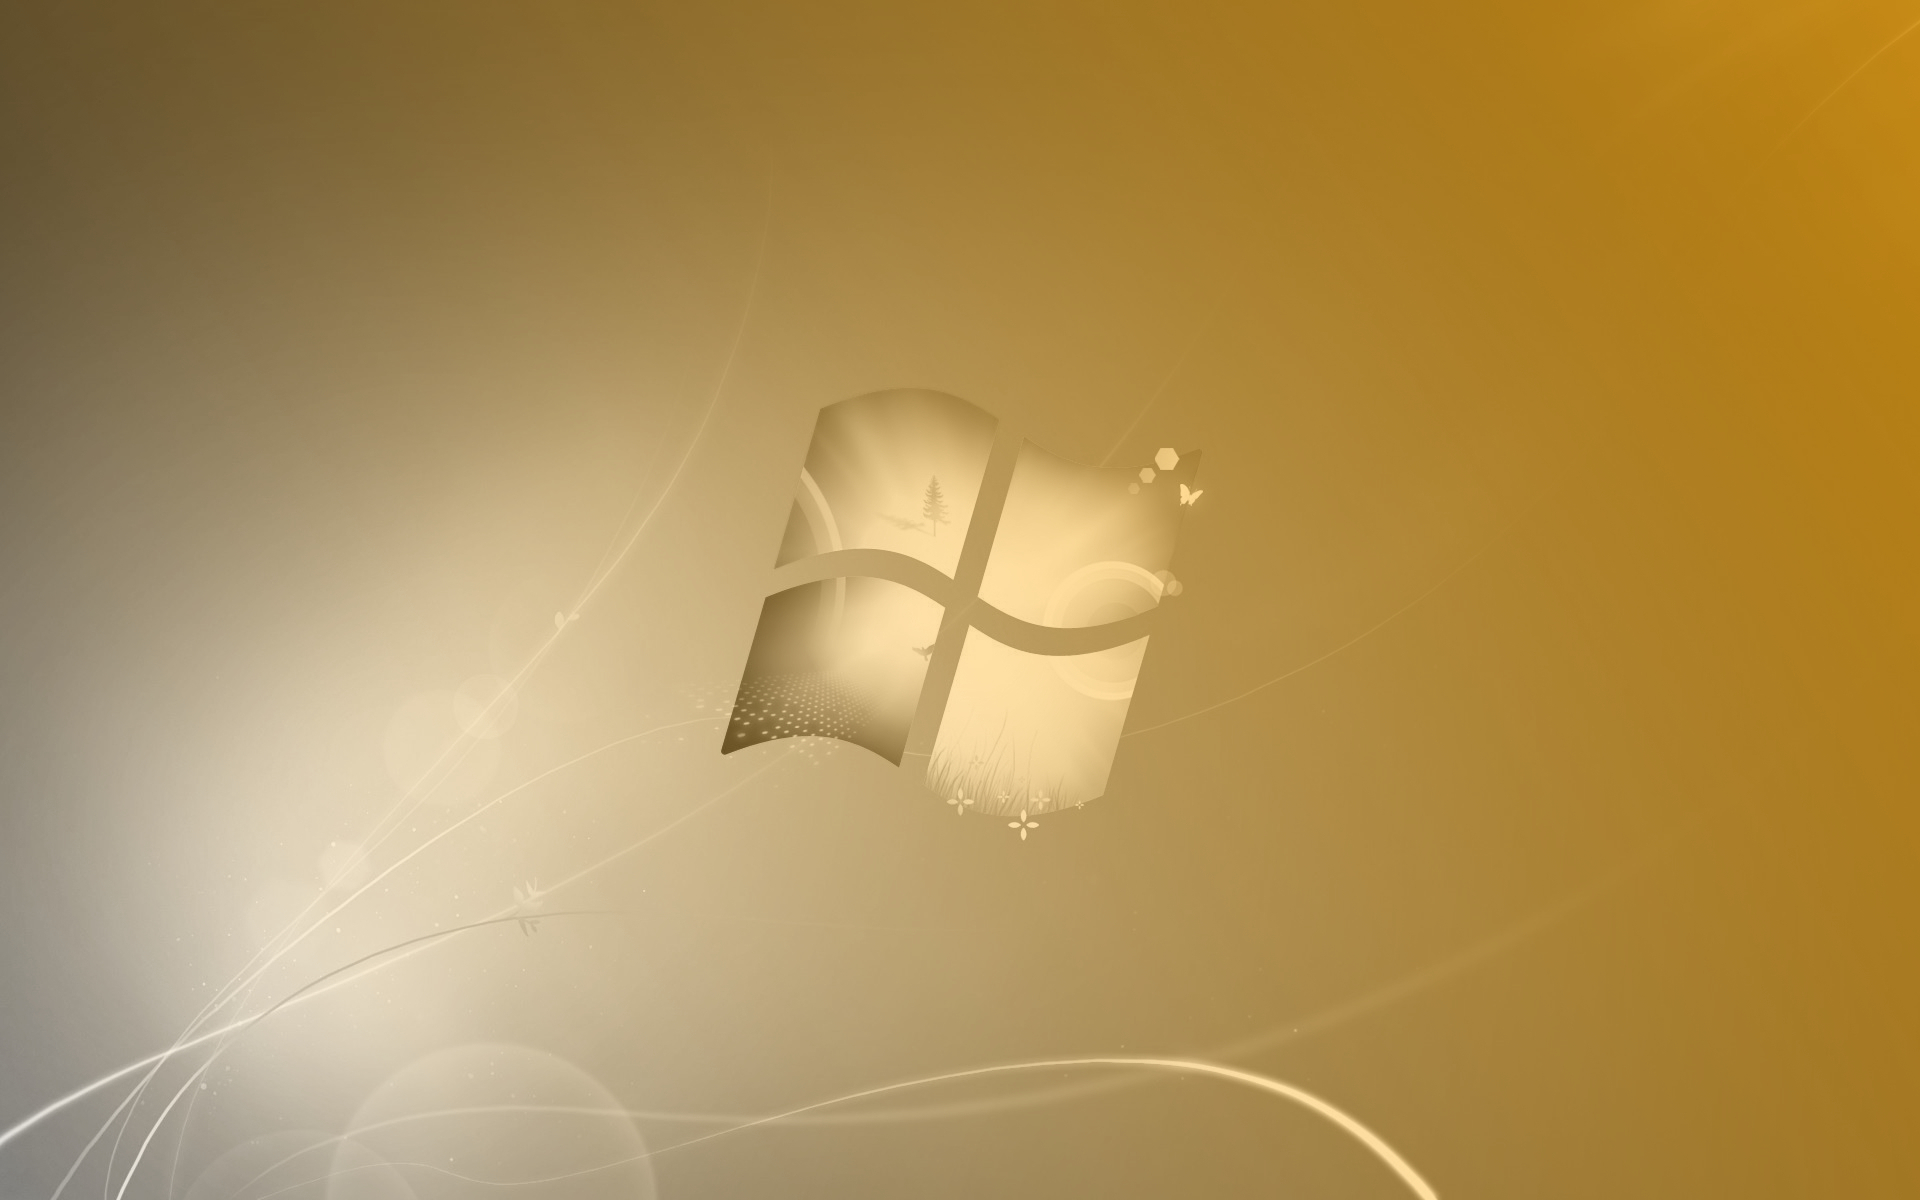 windows 7 - support-ende am 14.01.2020